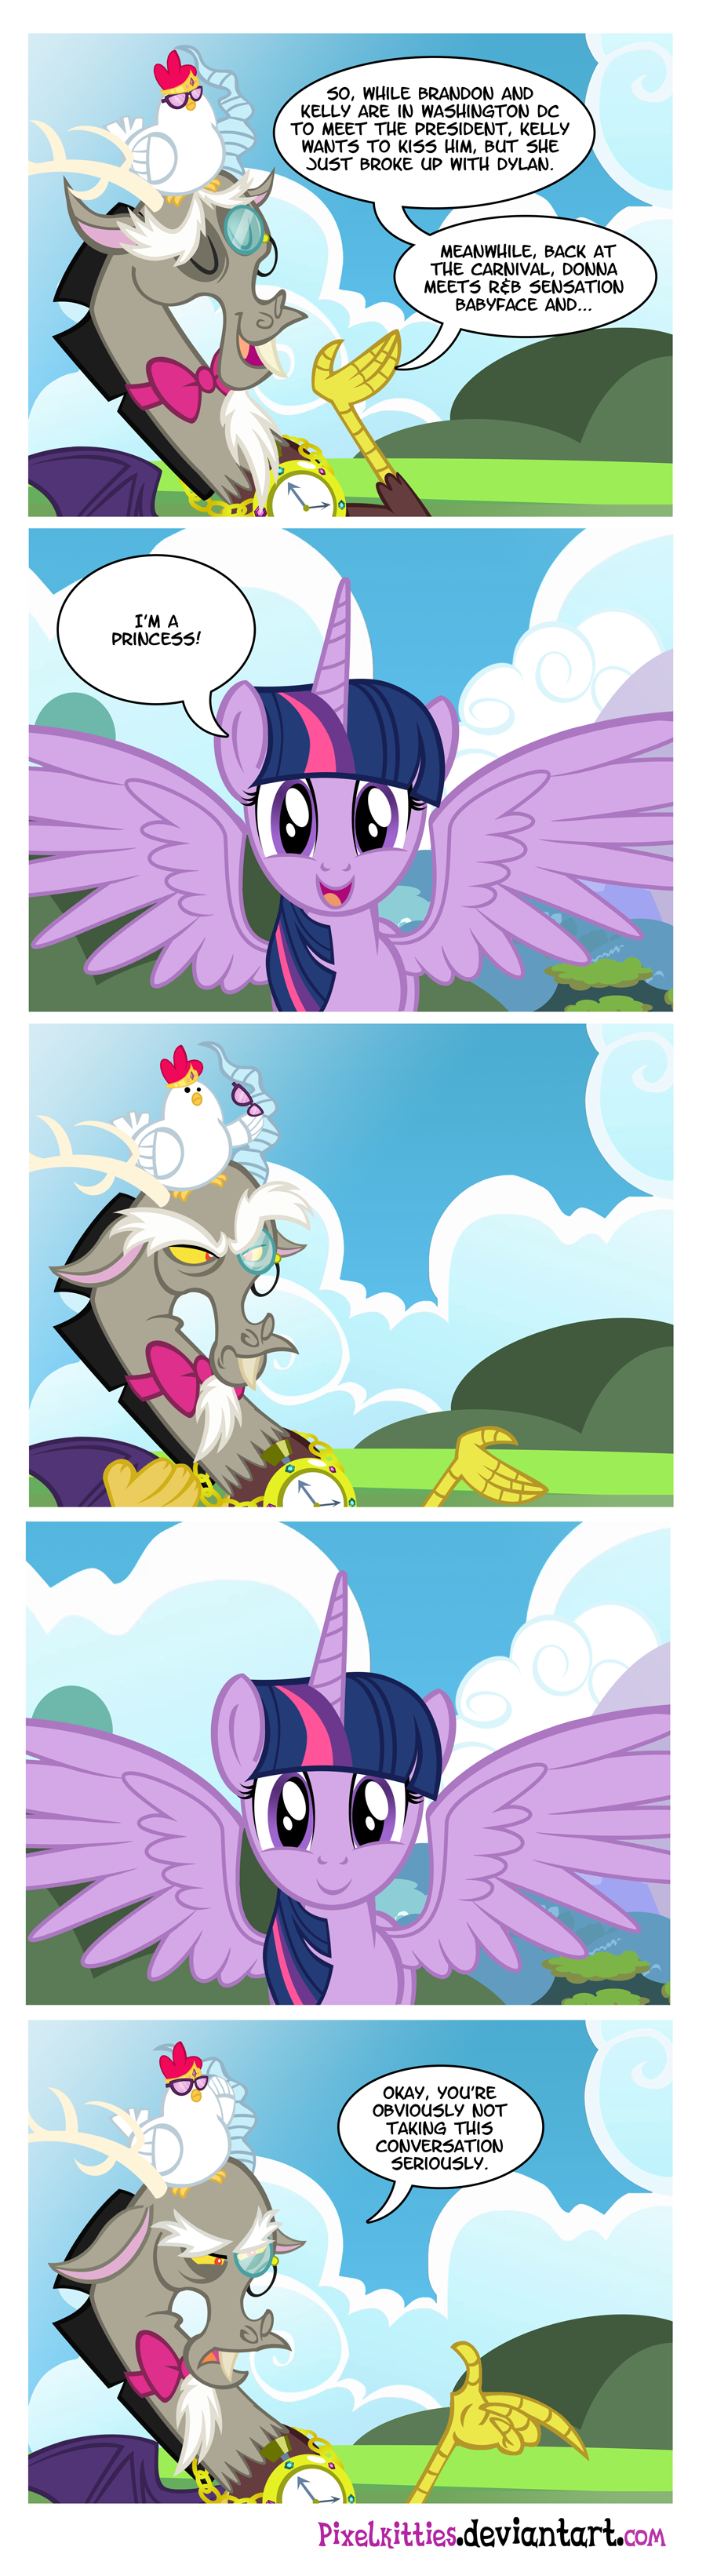 My Little Pony LIX: Is Very Proud Of You [Archive] - Page 5 - Giant